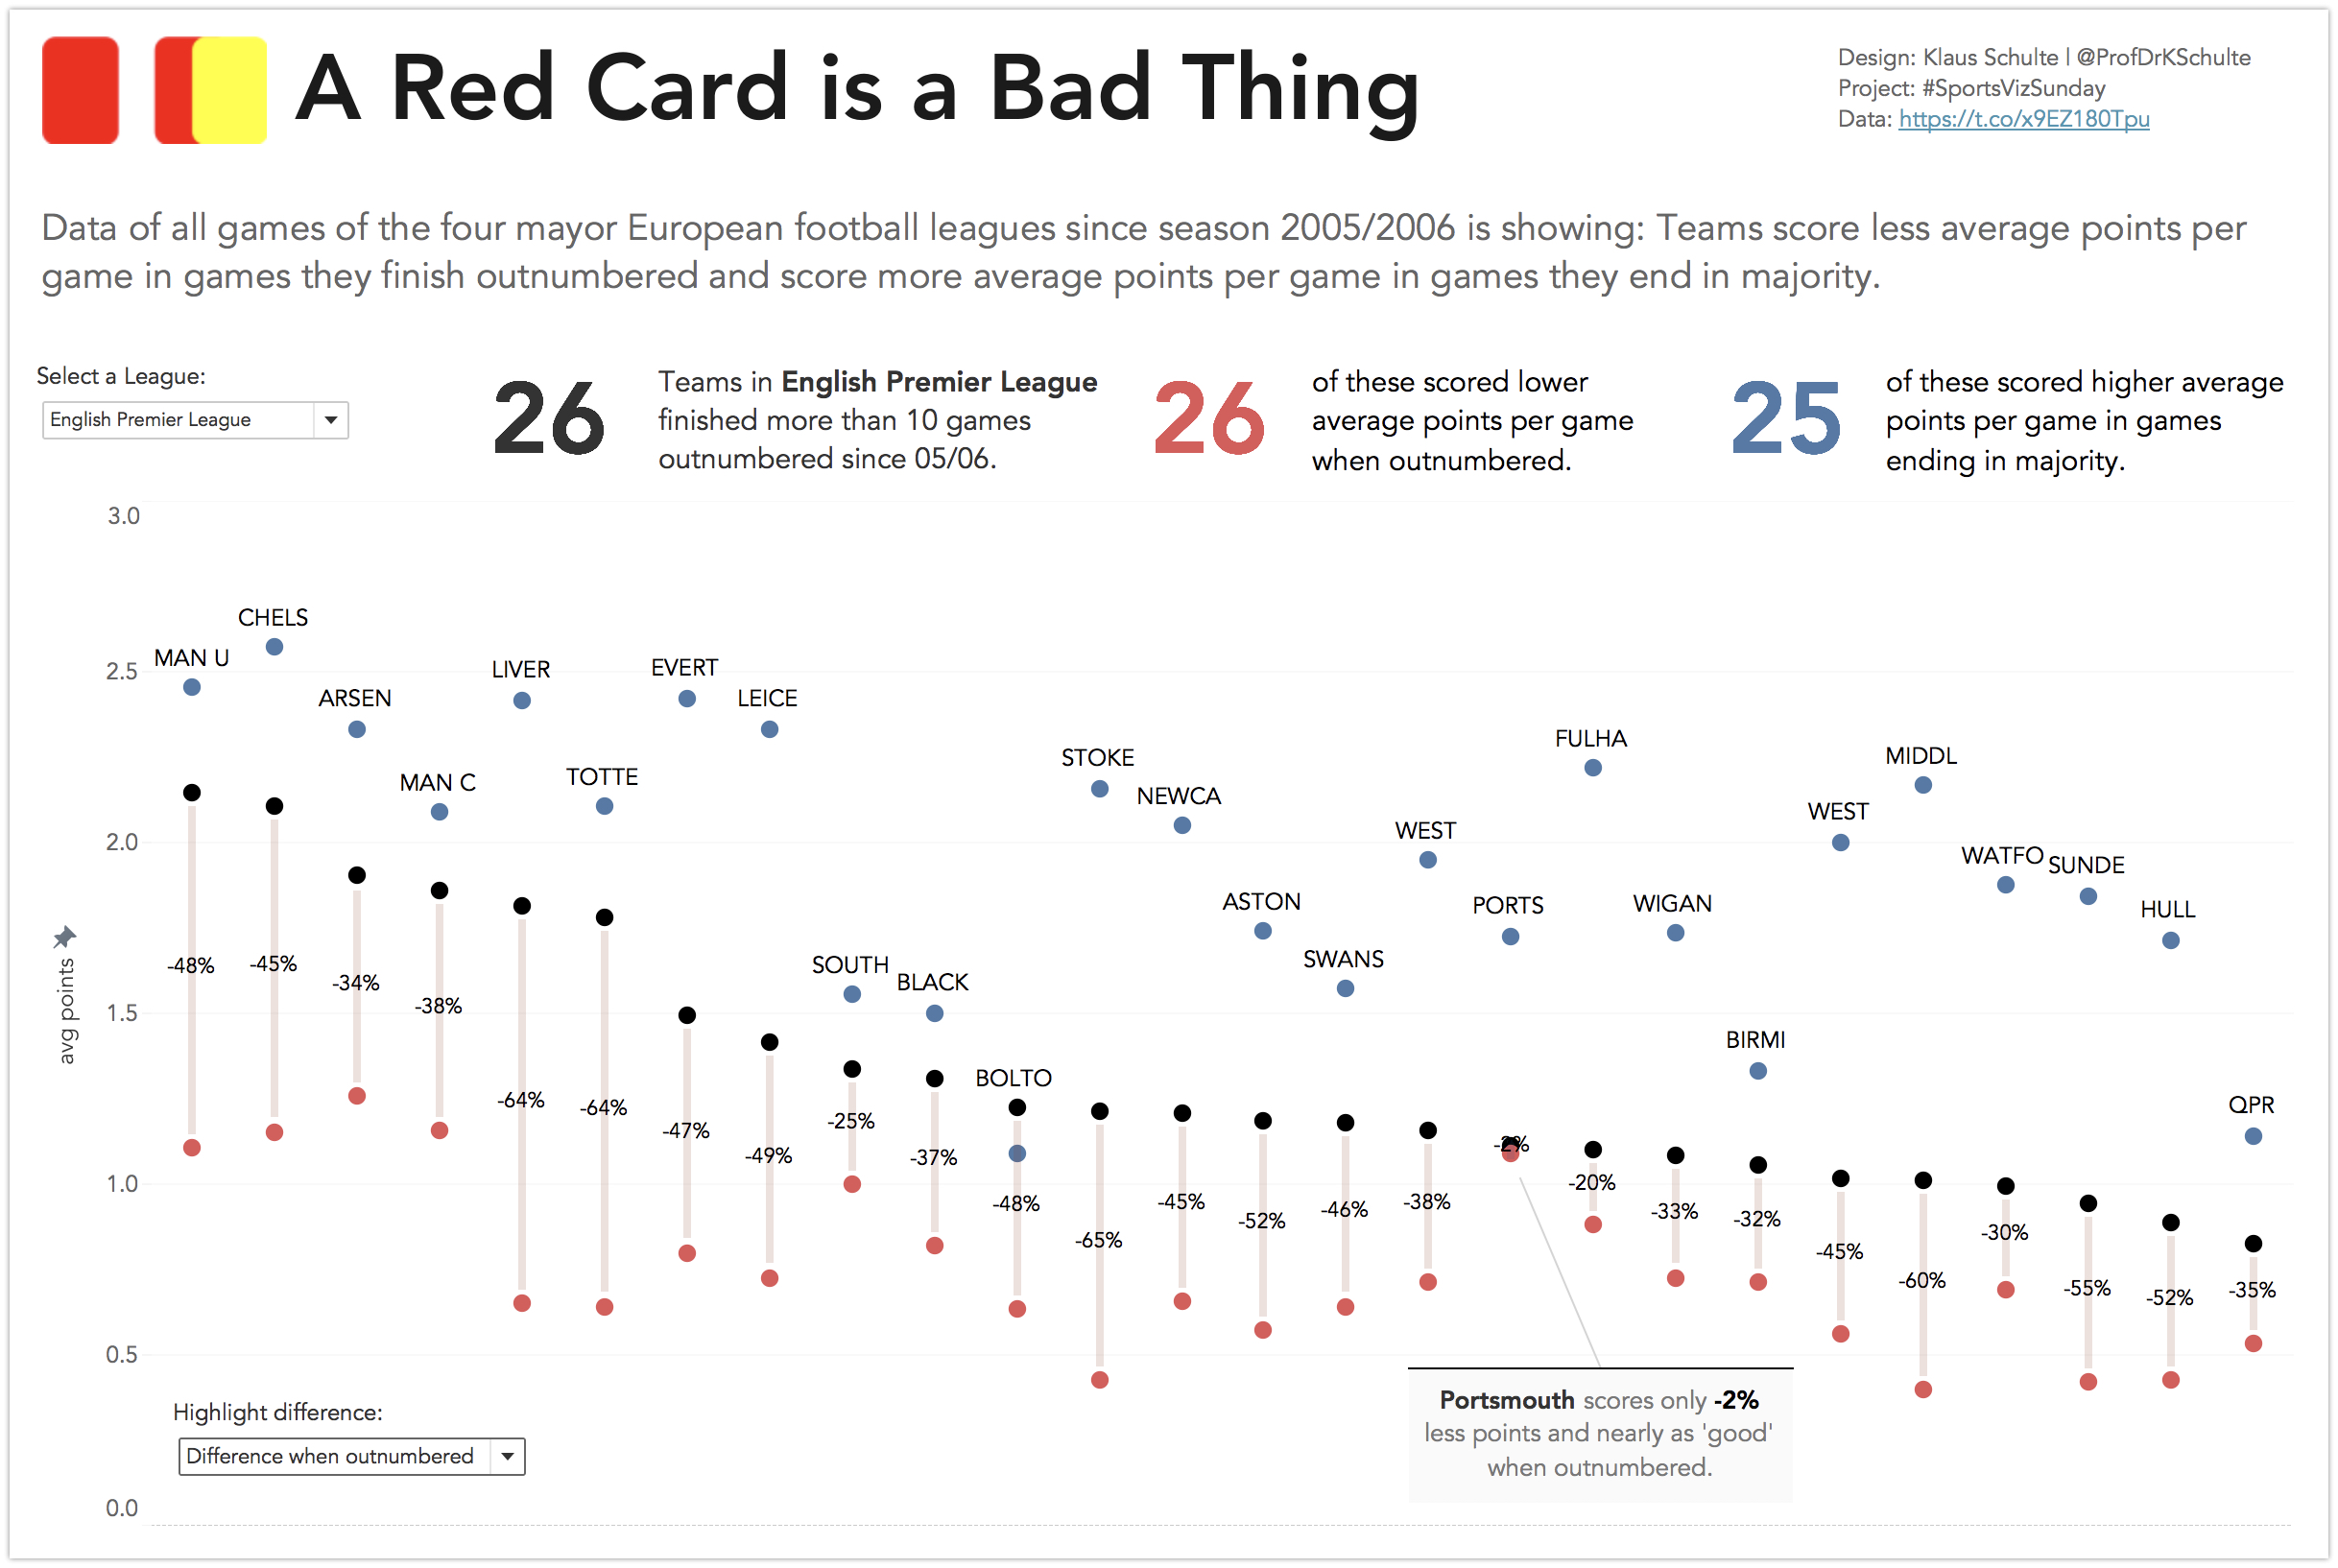 Tableau - A Red Card is a Bad Thing